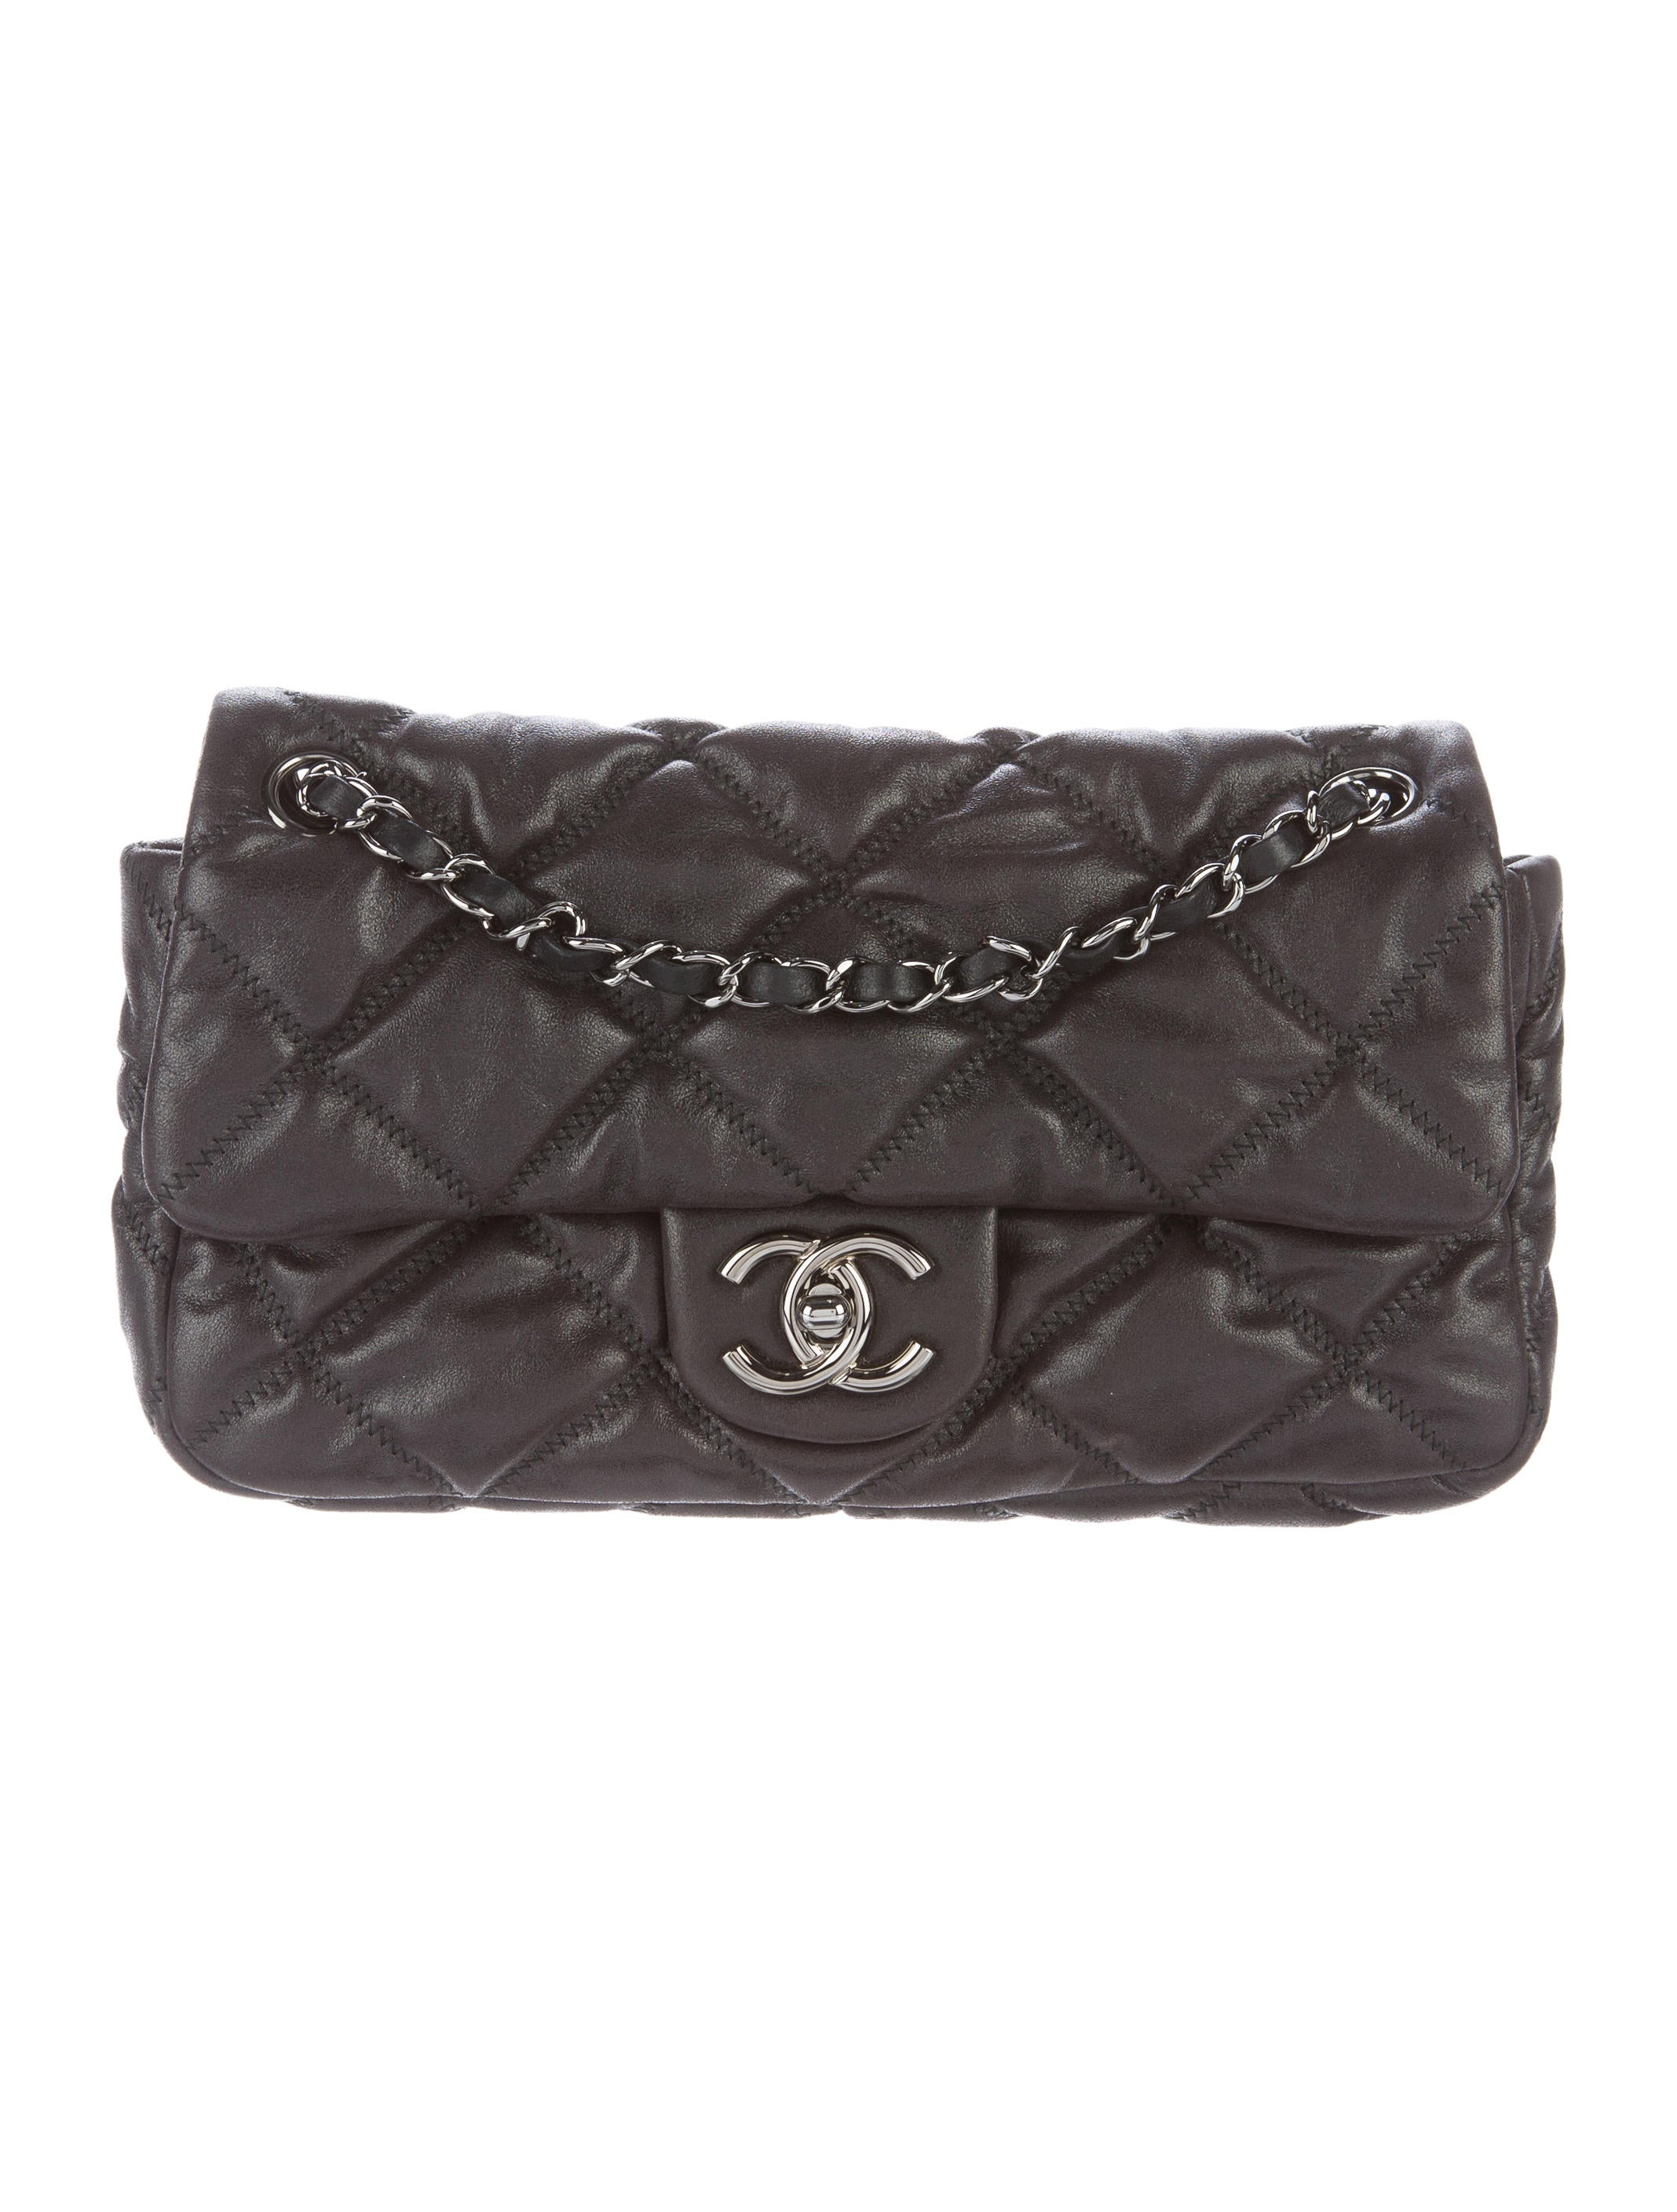 Chanel Small Bubble Quilted Flap Bag Handbags